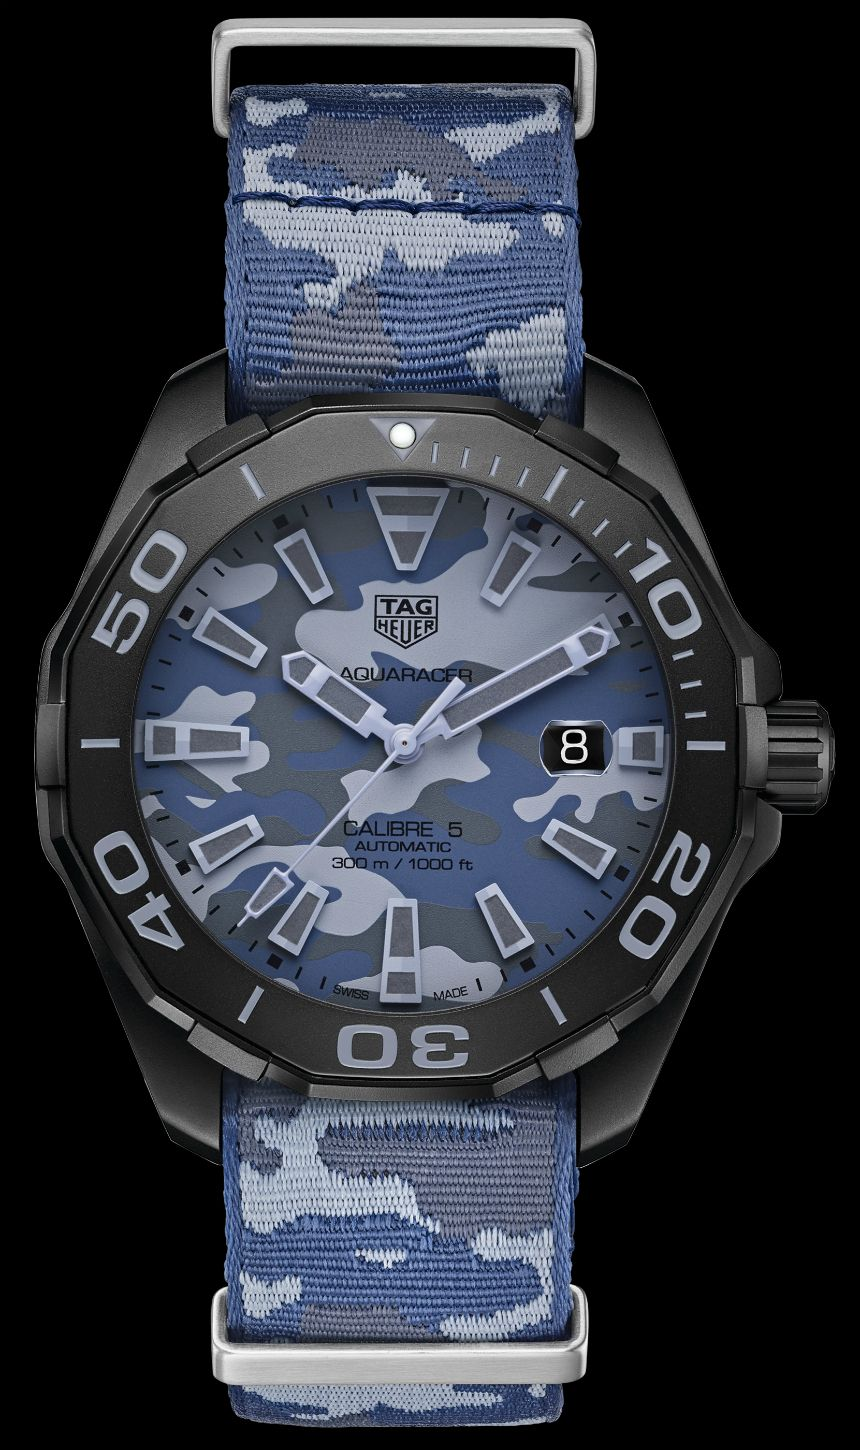 dc01a3e9d179 TAG Heuer Aquaracer 300 Caliber 5 Watches In Khaki   Camo Watch Releases